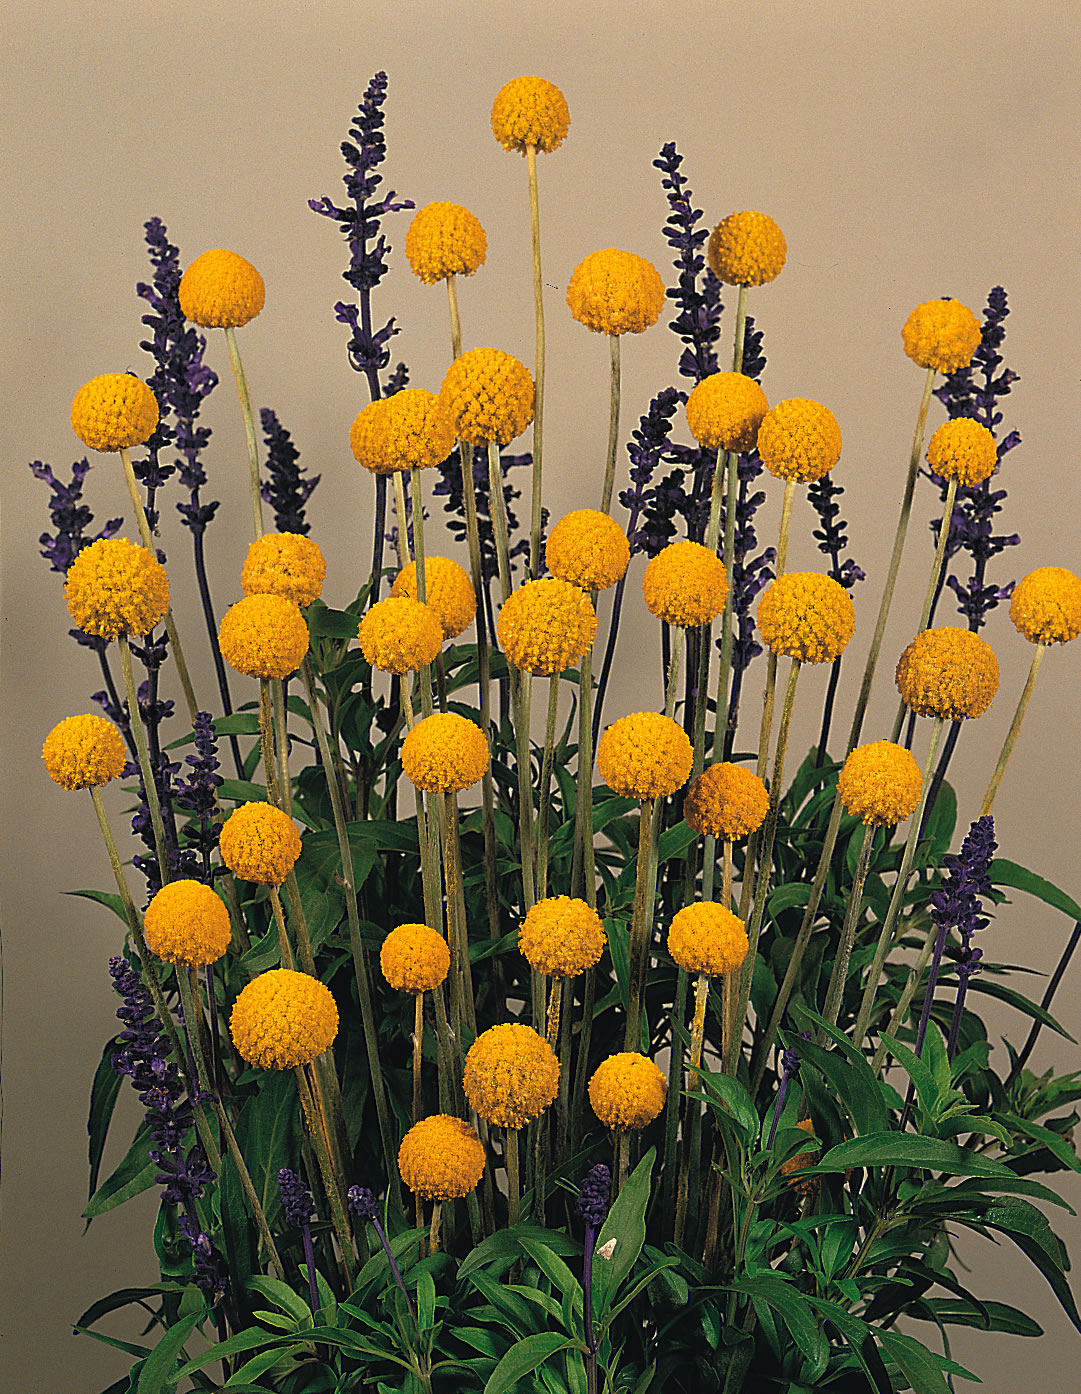 Tagetes Blume Craspedia Globosa 'drumstick' | Craspedia Seeds | Kings Seeds